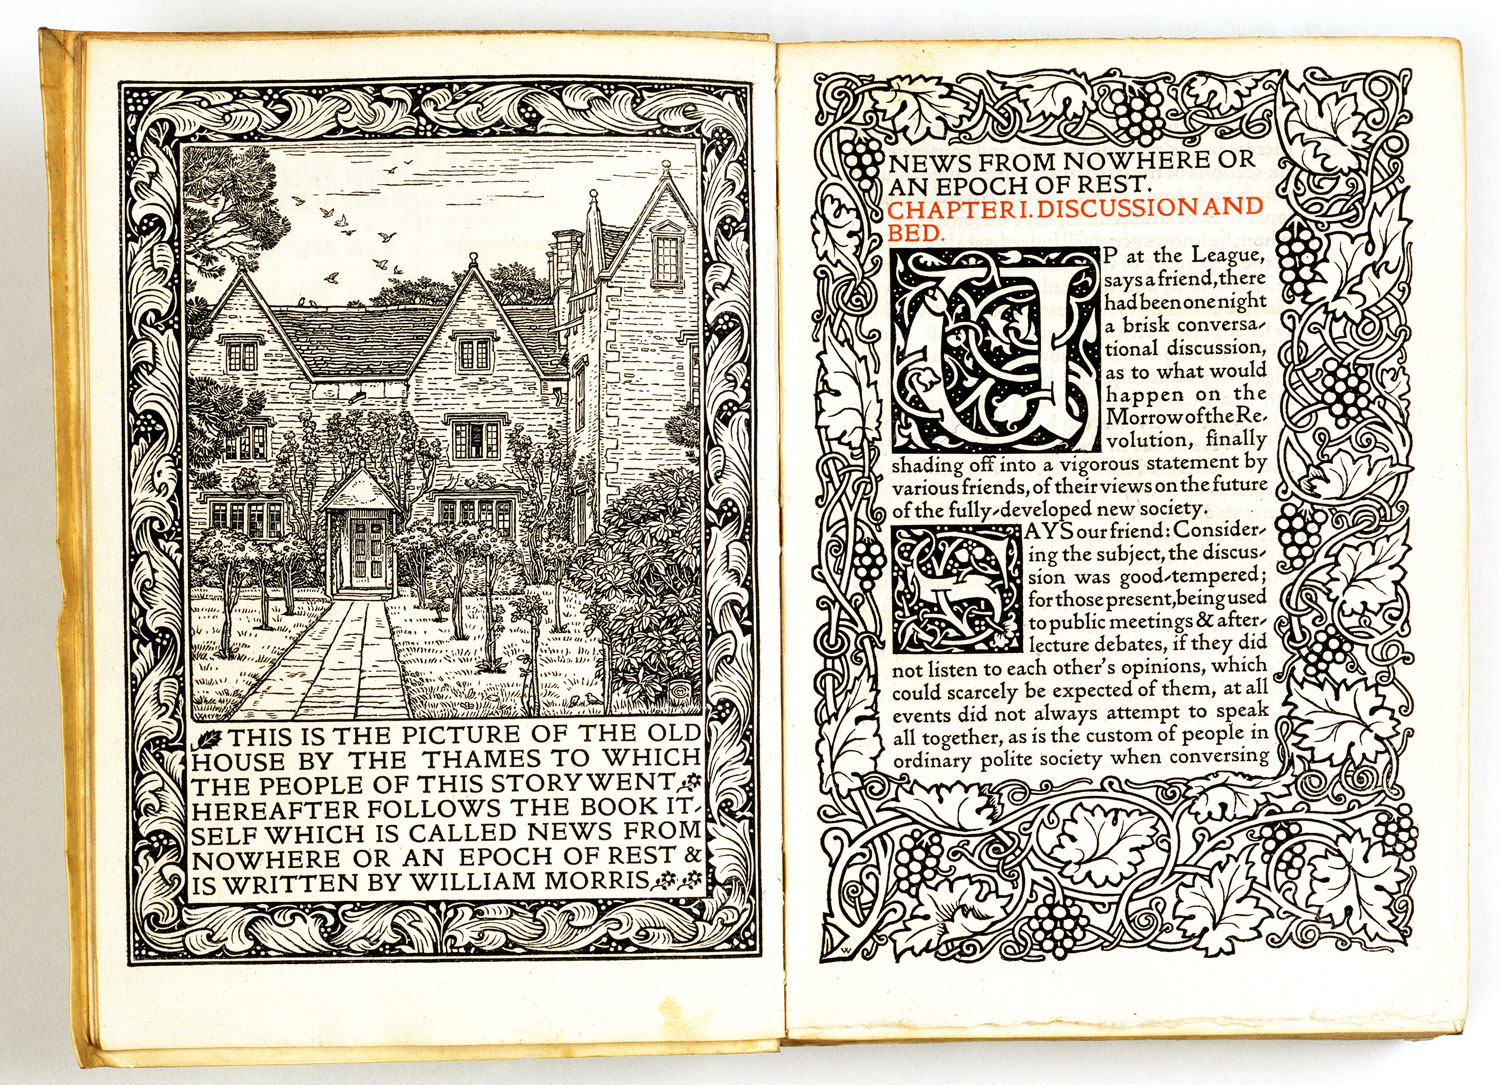 open pages from 19th Century ornate William Morris book